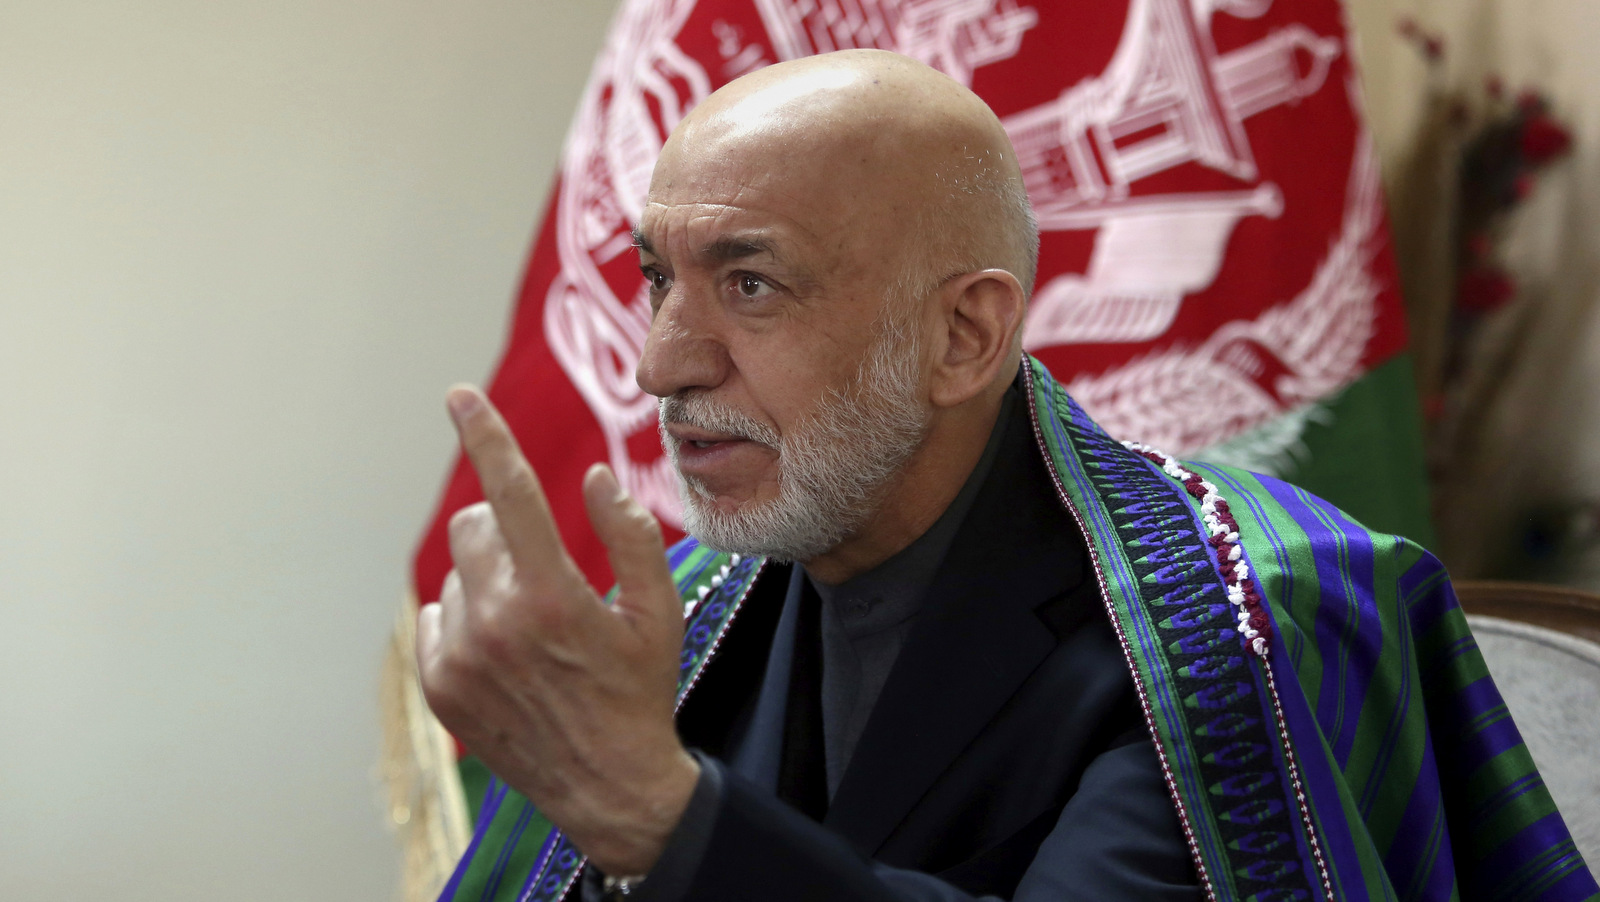 Former Afghan President Karzai: US Colluded with ISIS in Afghanistan